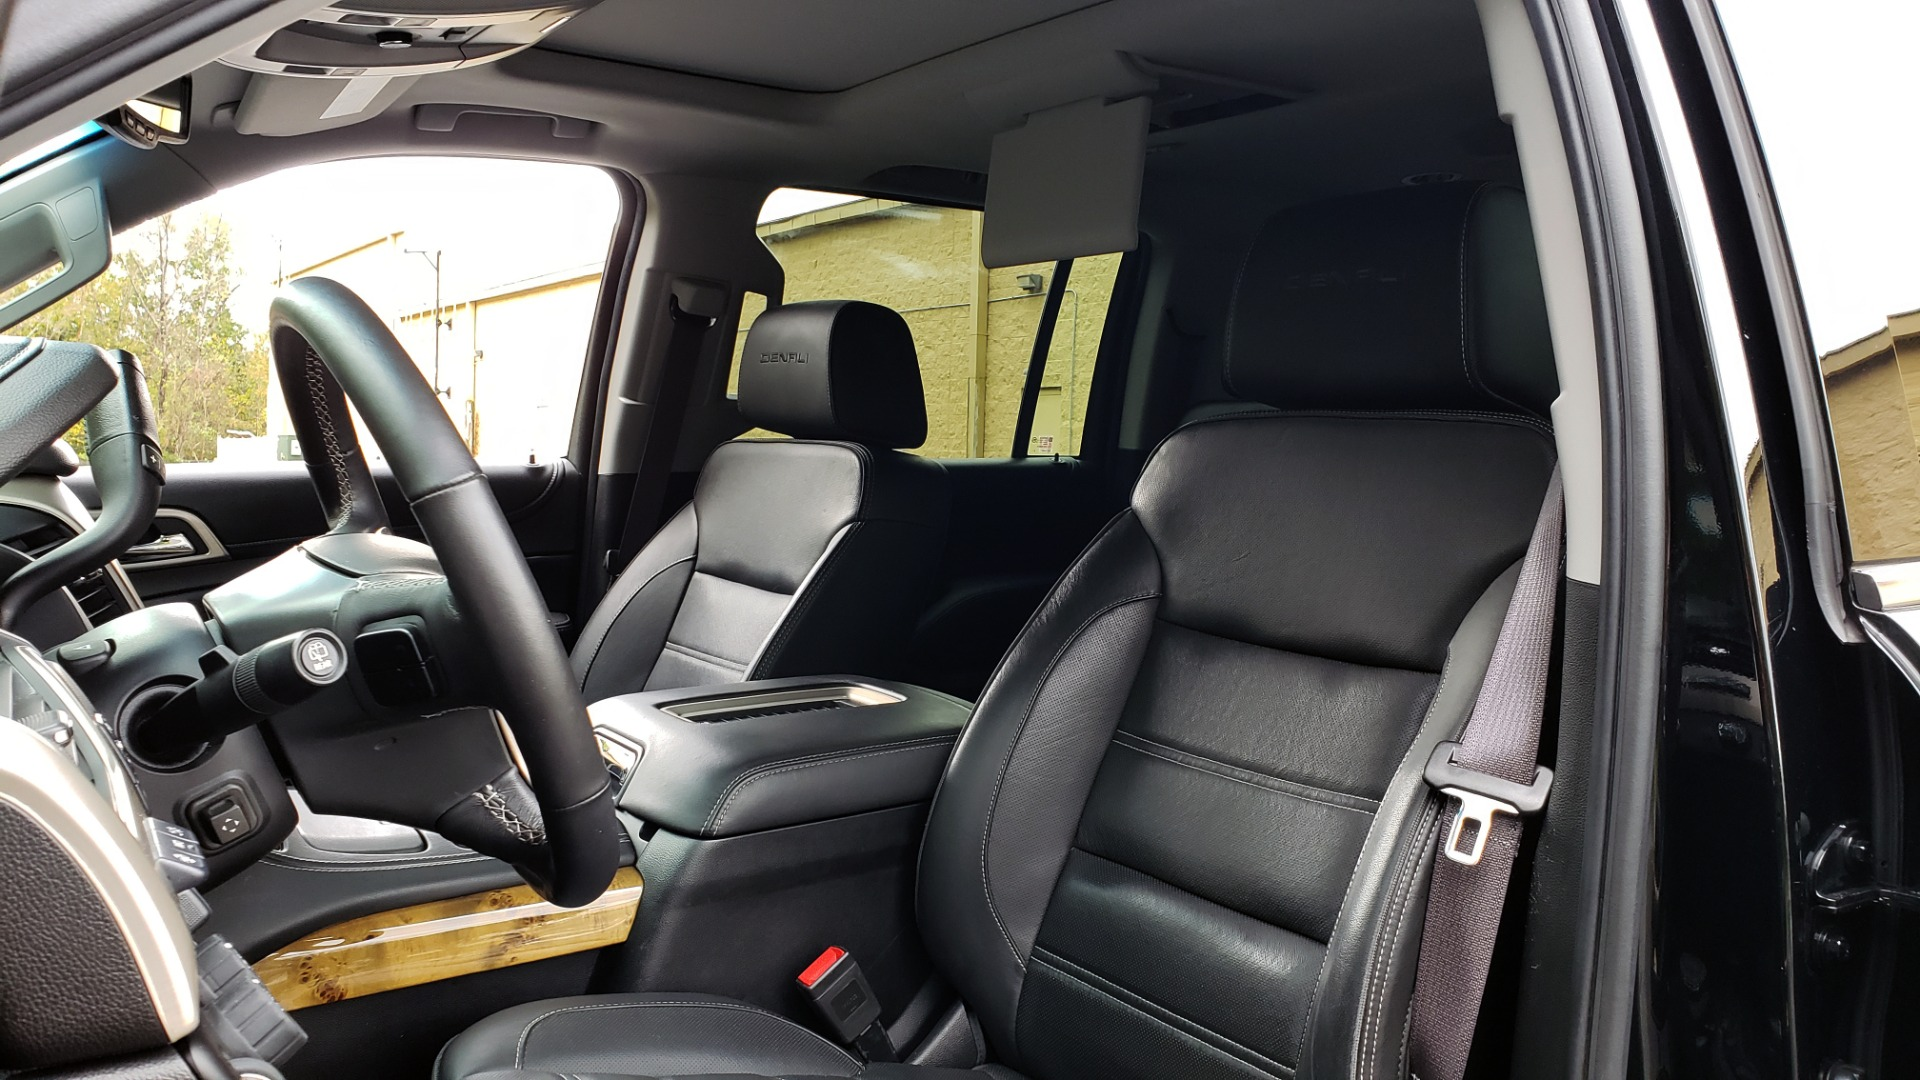 Used 2017 GMC YUKON XL DENALI 4WD / NAV / SUNROOF / ENT / 3-ROWS / BOSE / REARVIEW for sale $48,695 at Formula Imports in Charlotte NC 28227 39